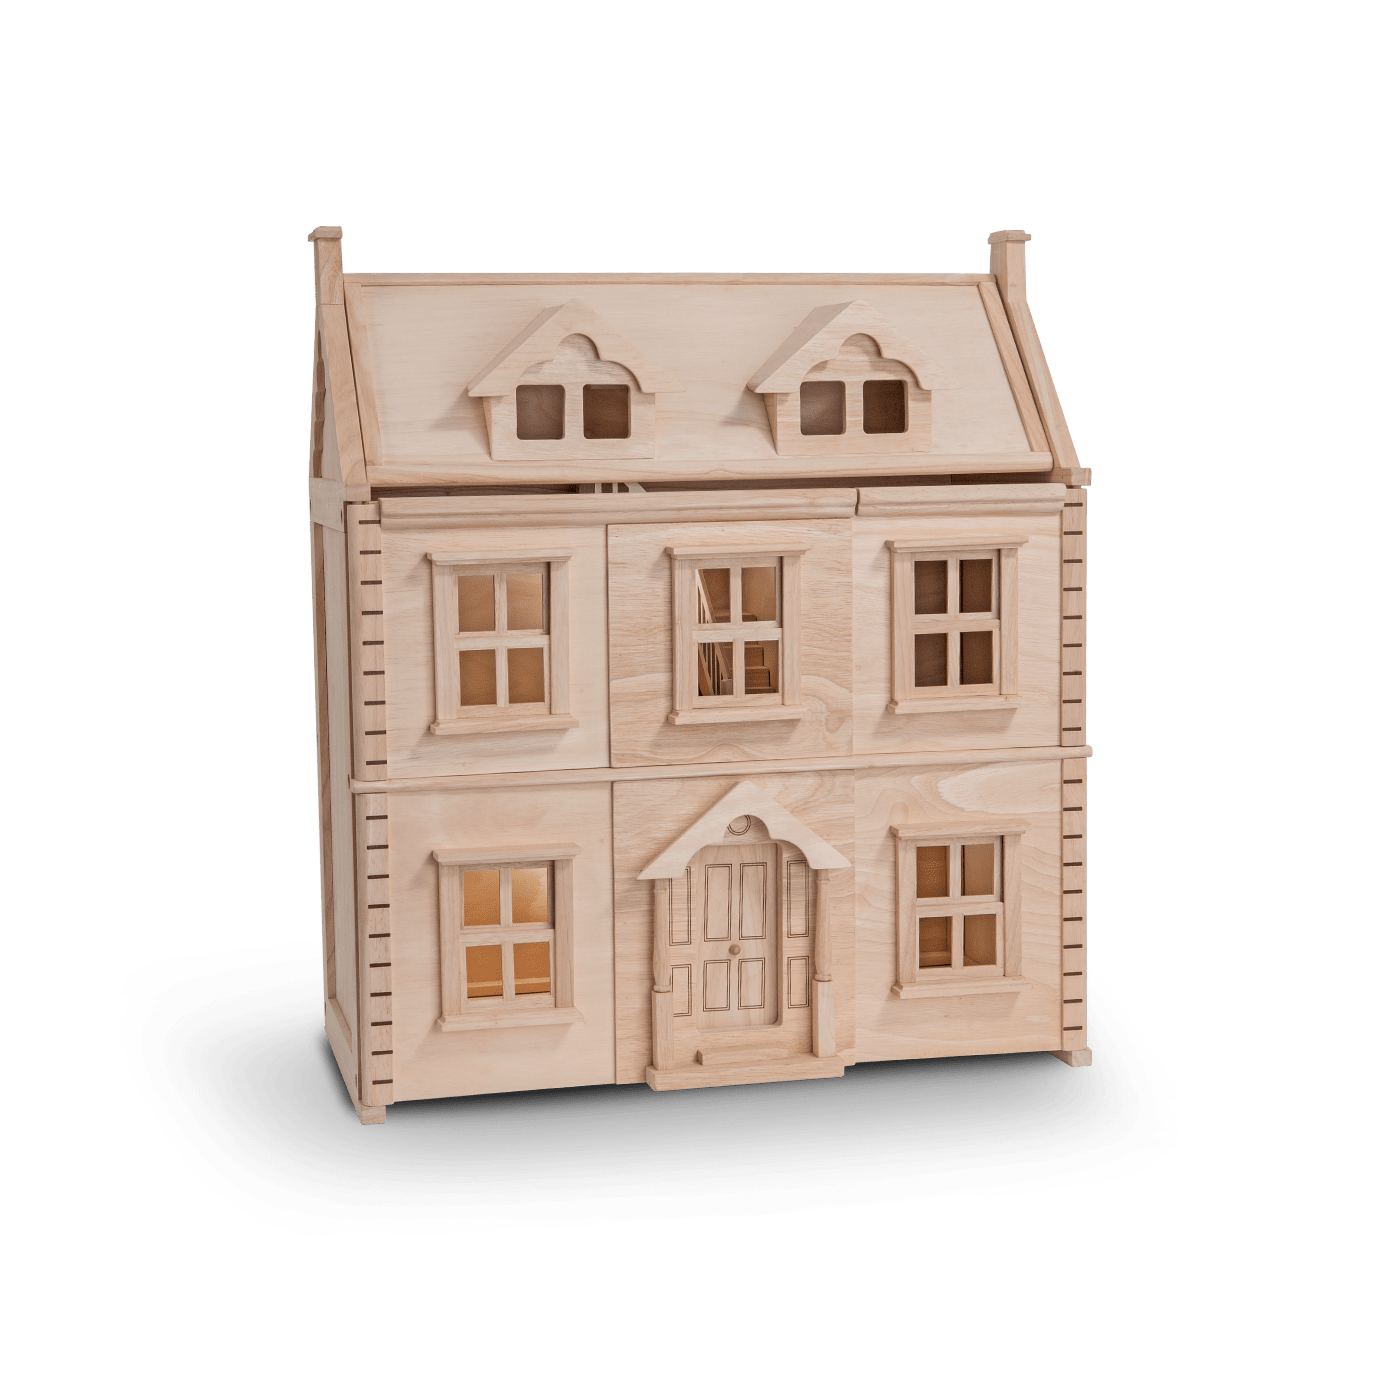 7124_PlanToys_VICTORIAN_DOLLHOUSE_Pretend_Play_Imagination_Coordination_Language_and_Communications_Social_Fine_Motor_3yrs_Wooden_toys_Education_toys_Safety_Toys_Non-toxic_0.png